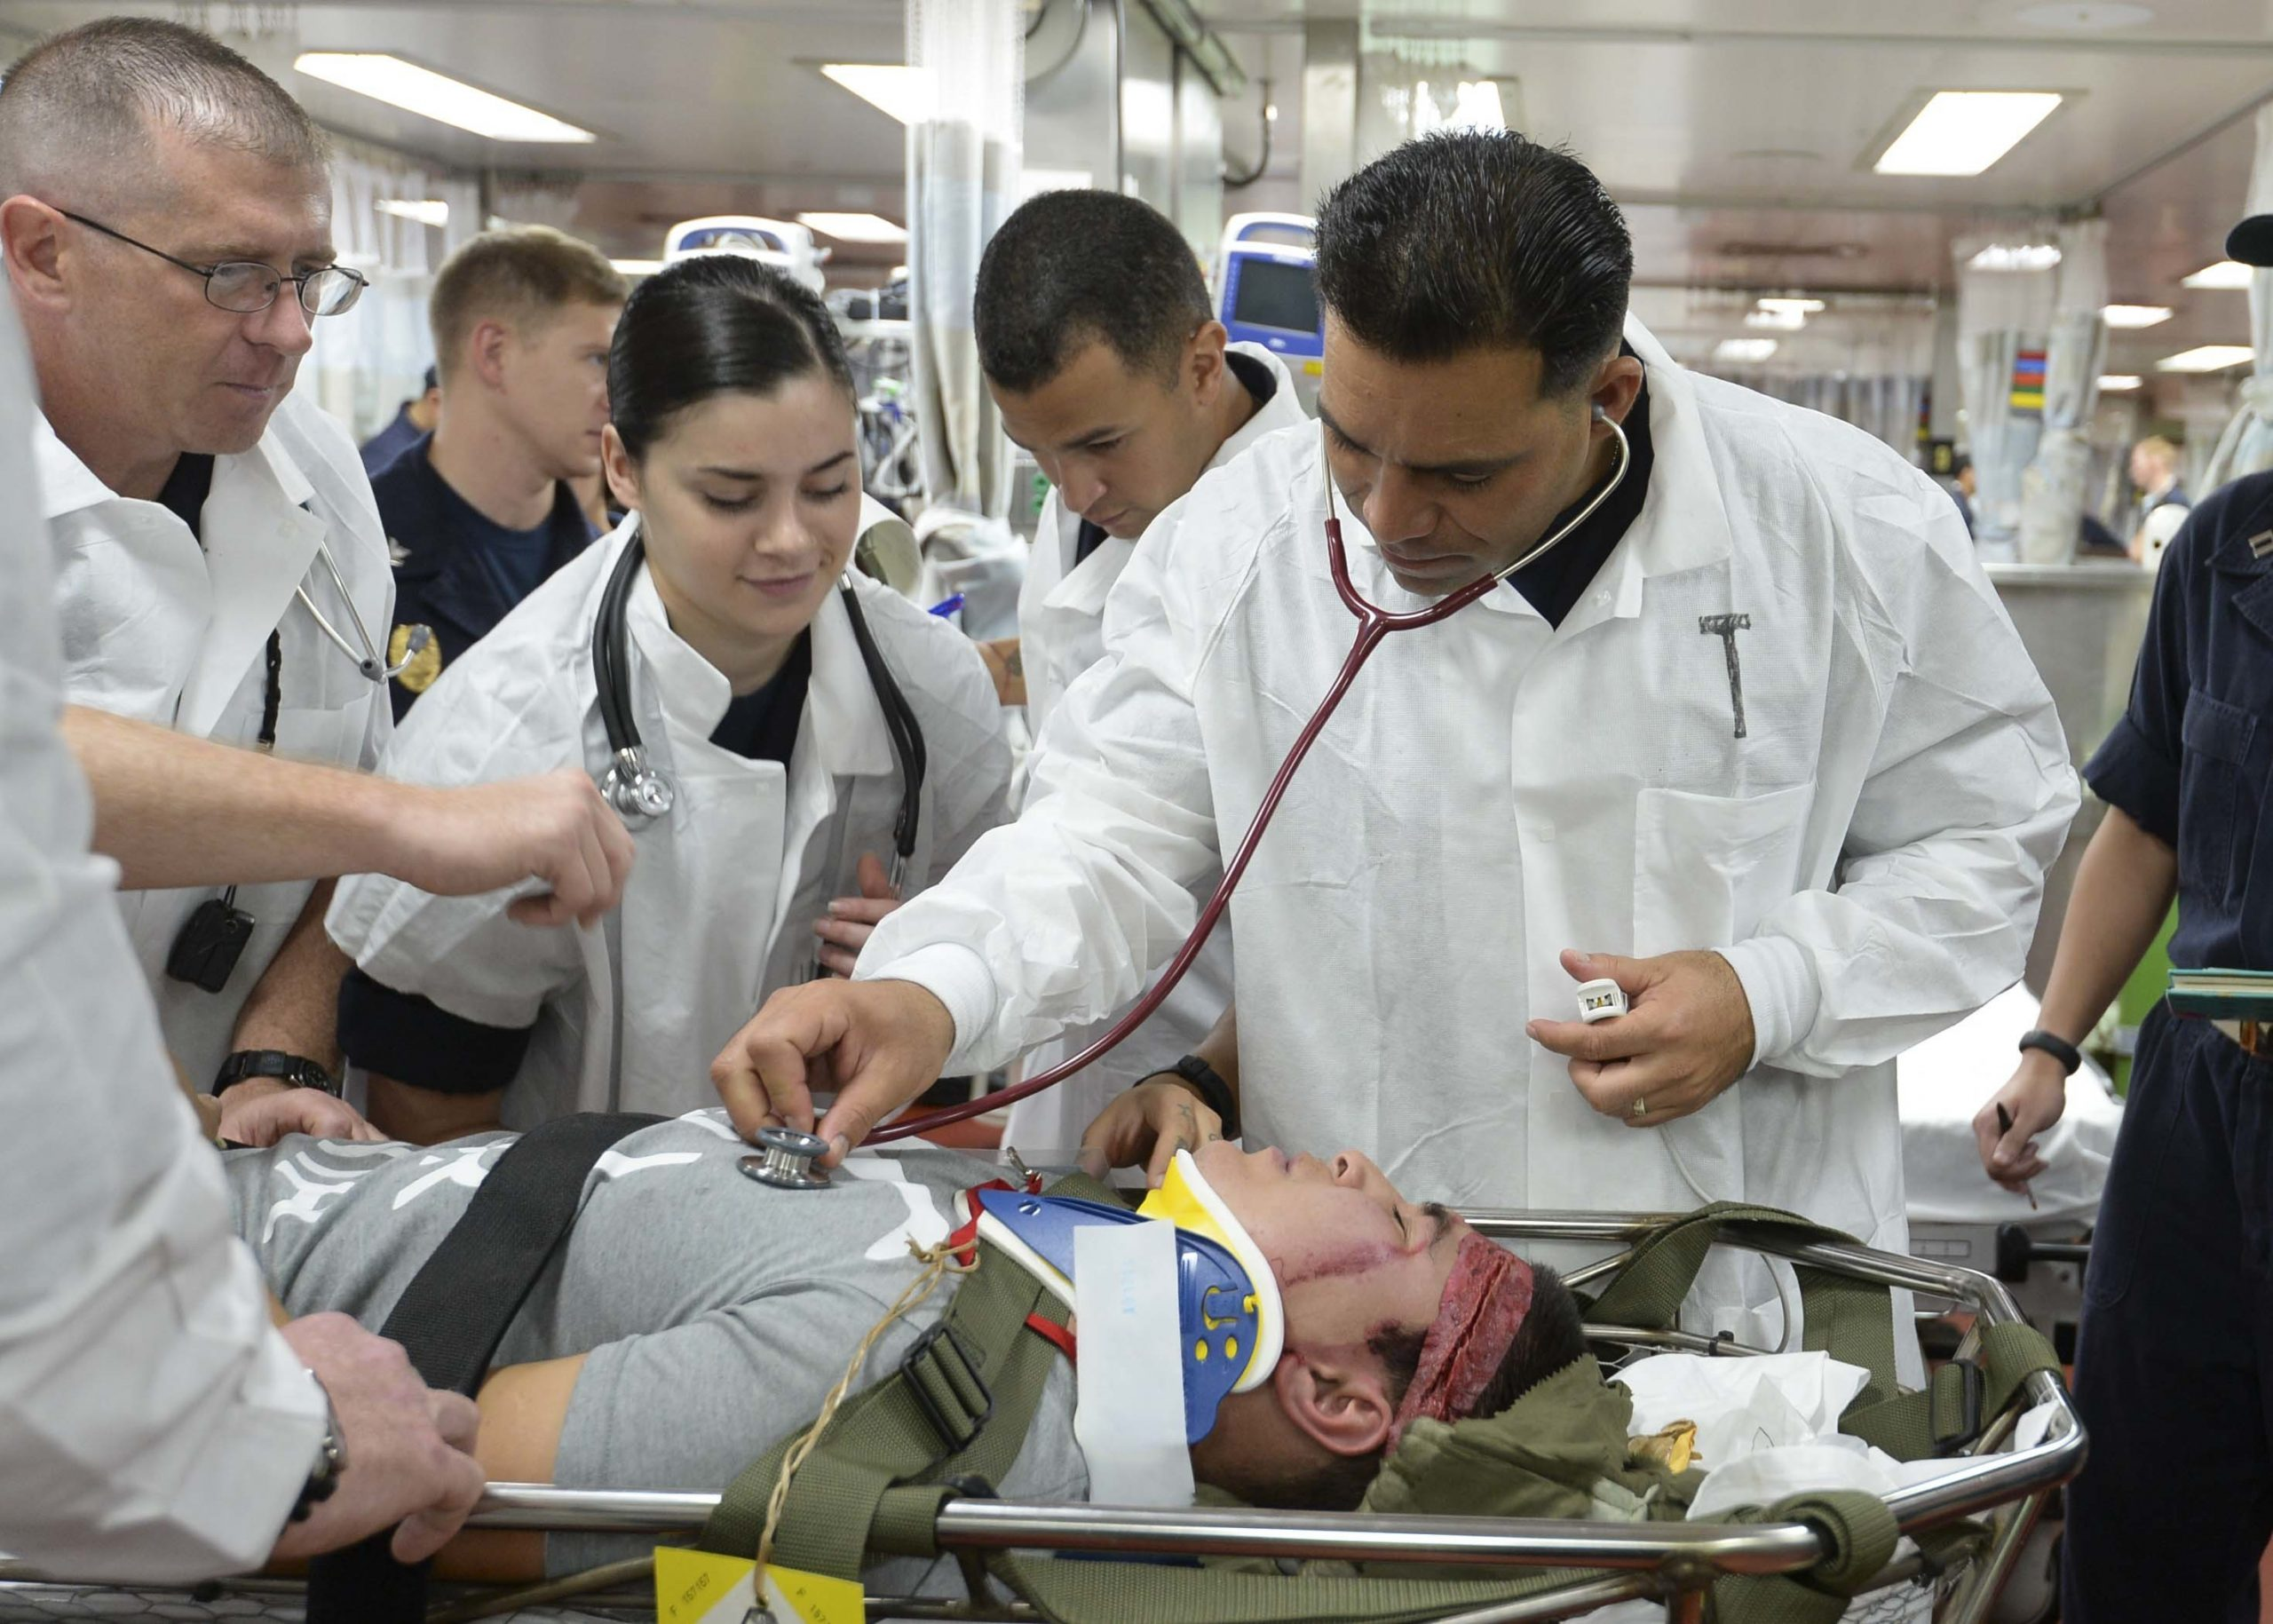 drill, mass casualty exercise